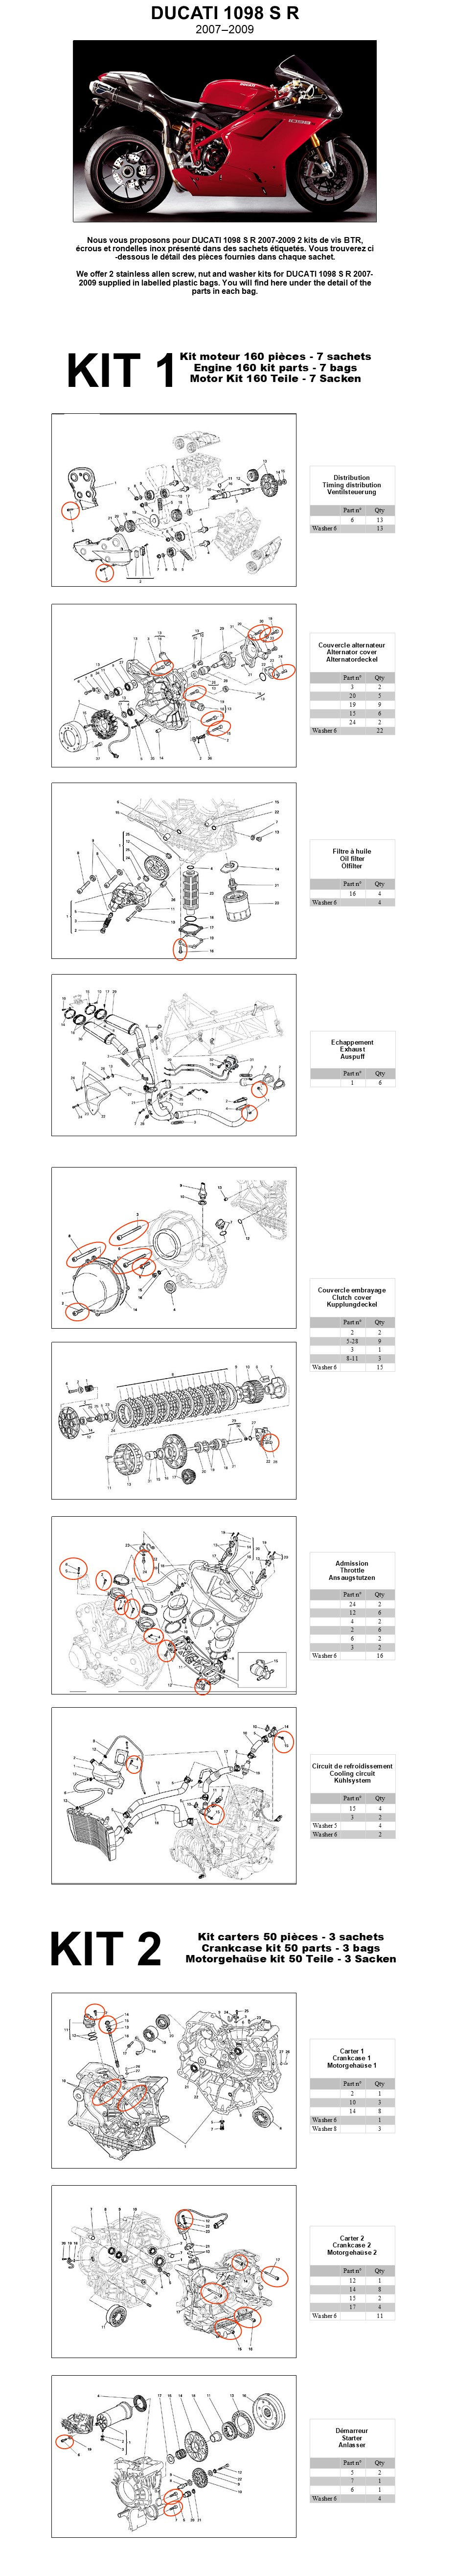 Ducati 1098 S R 2007 20 Engine Stainless Allen Screw Kit 1 1098s Diagram Each Is Supplied With An Internet Address Of The Mounting Drawing For